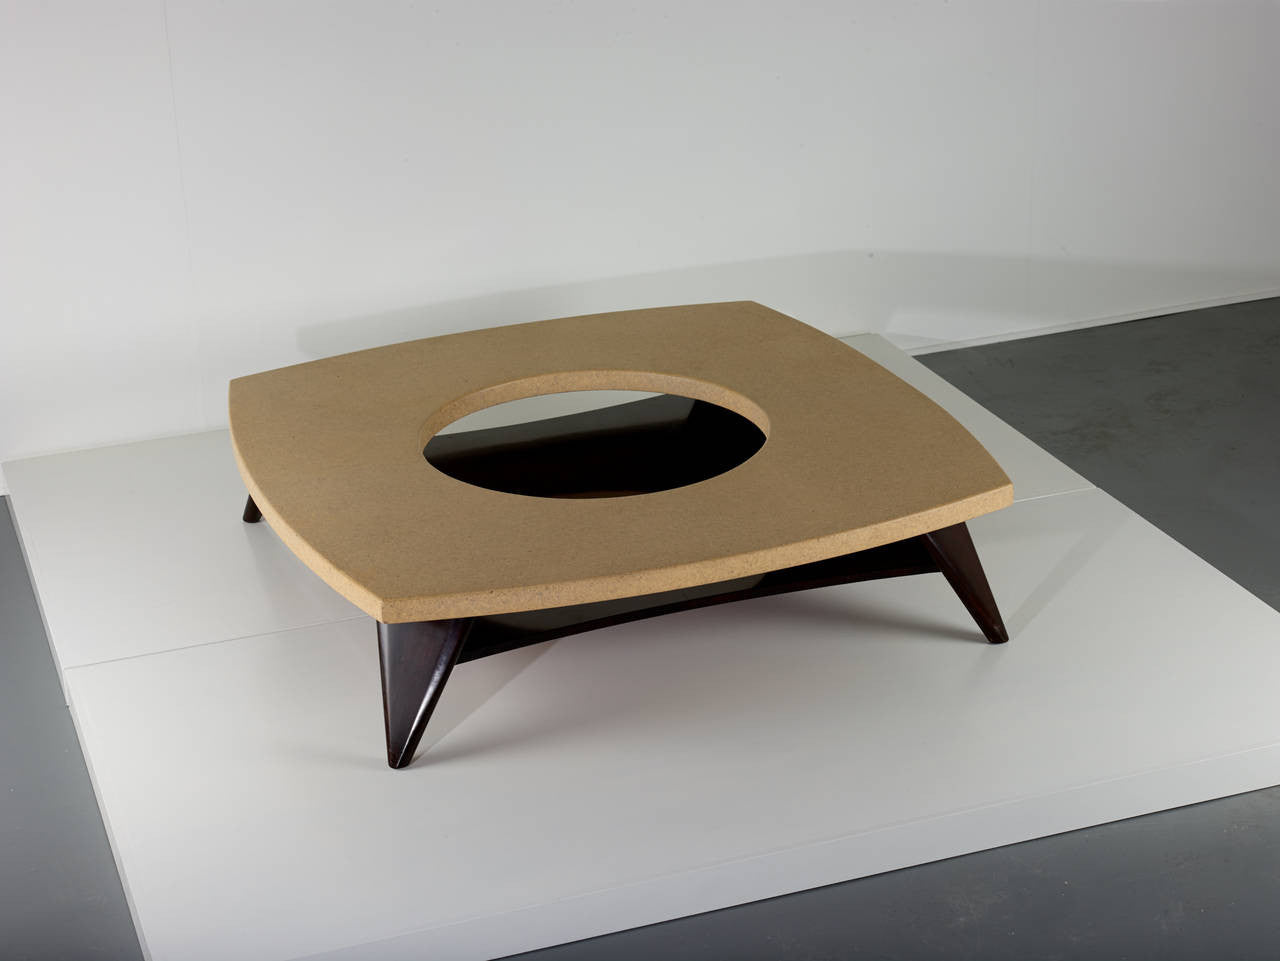 Paul Frankl Cork Coffee Table, 1951 - The Exchange Int